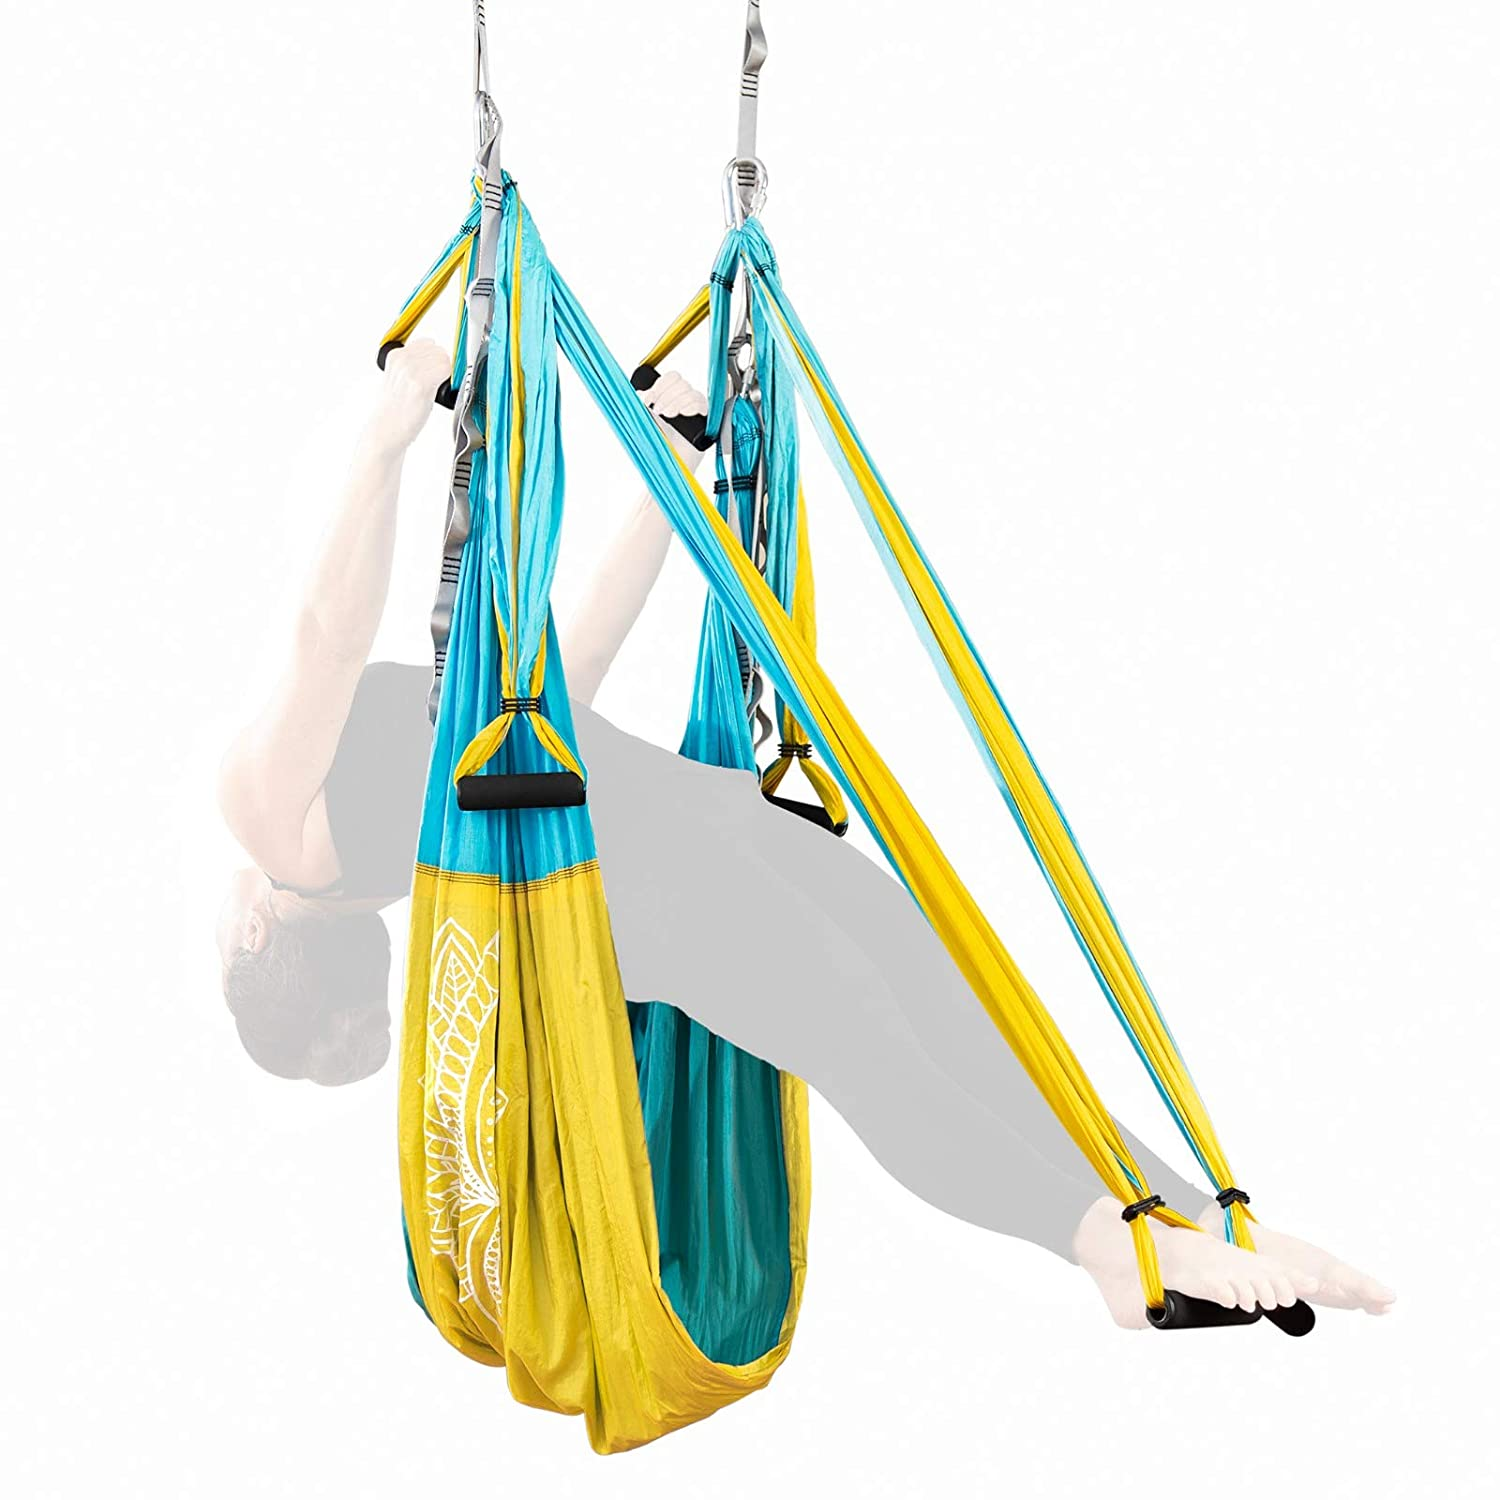 Adult Yoga Trapeze Swing Kit best acne treatment